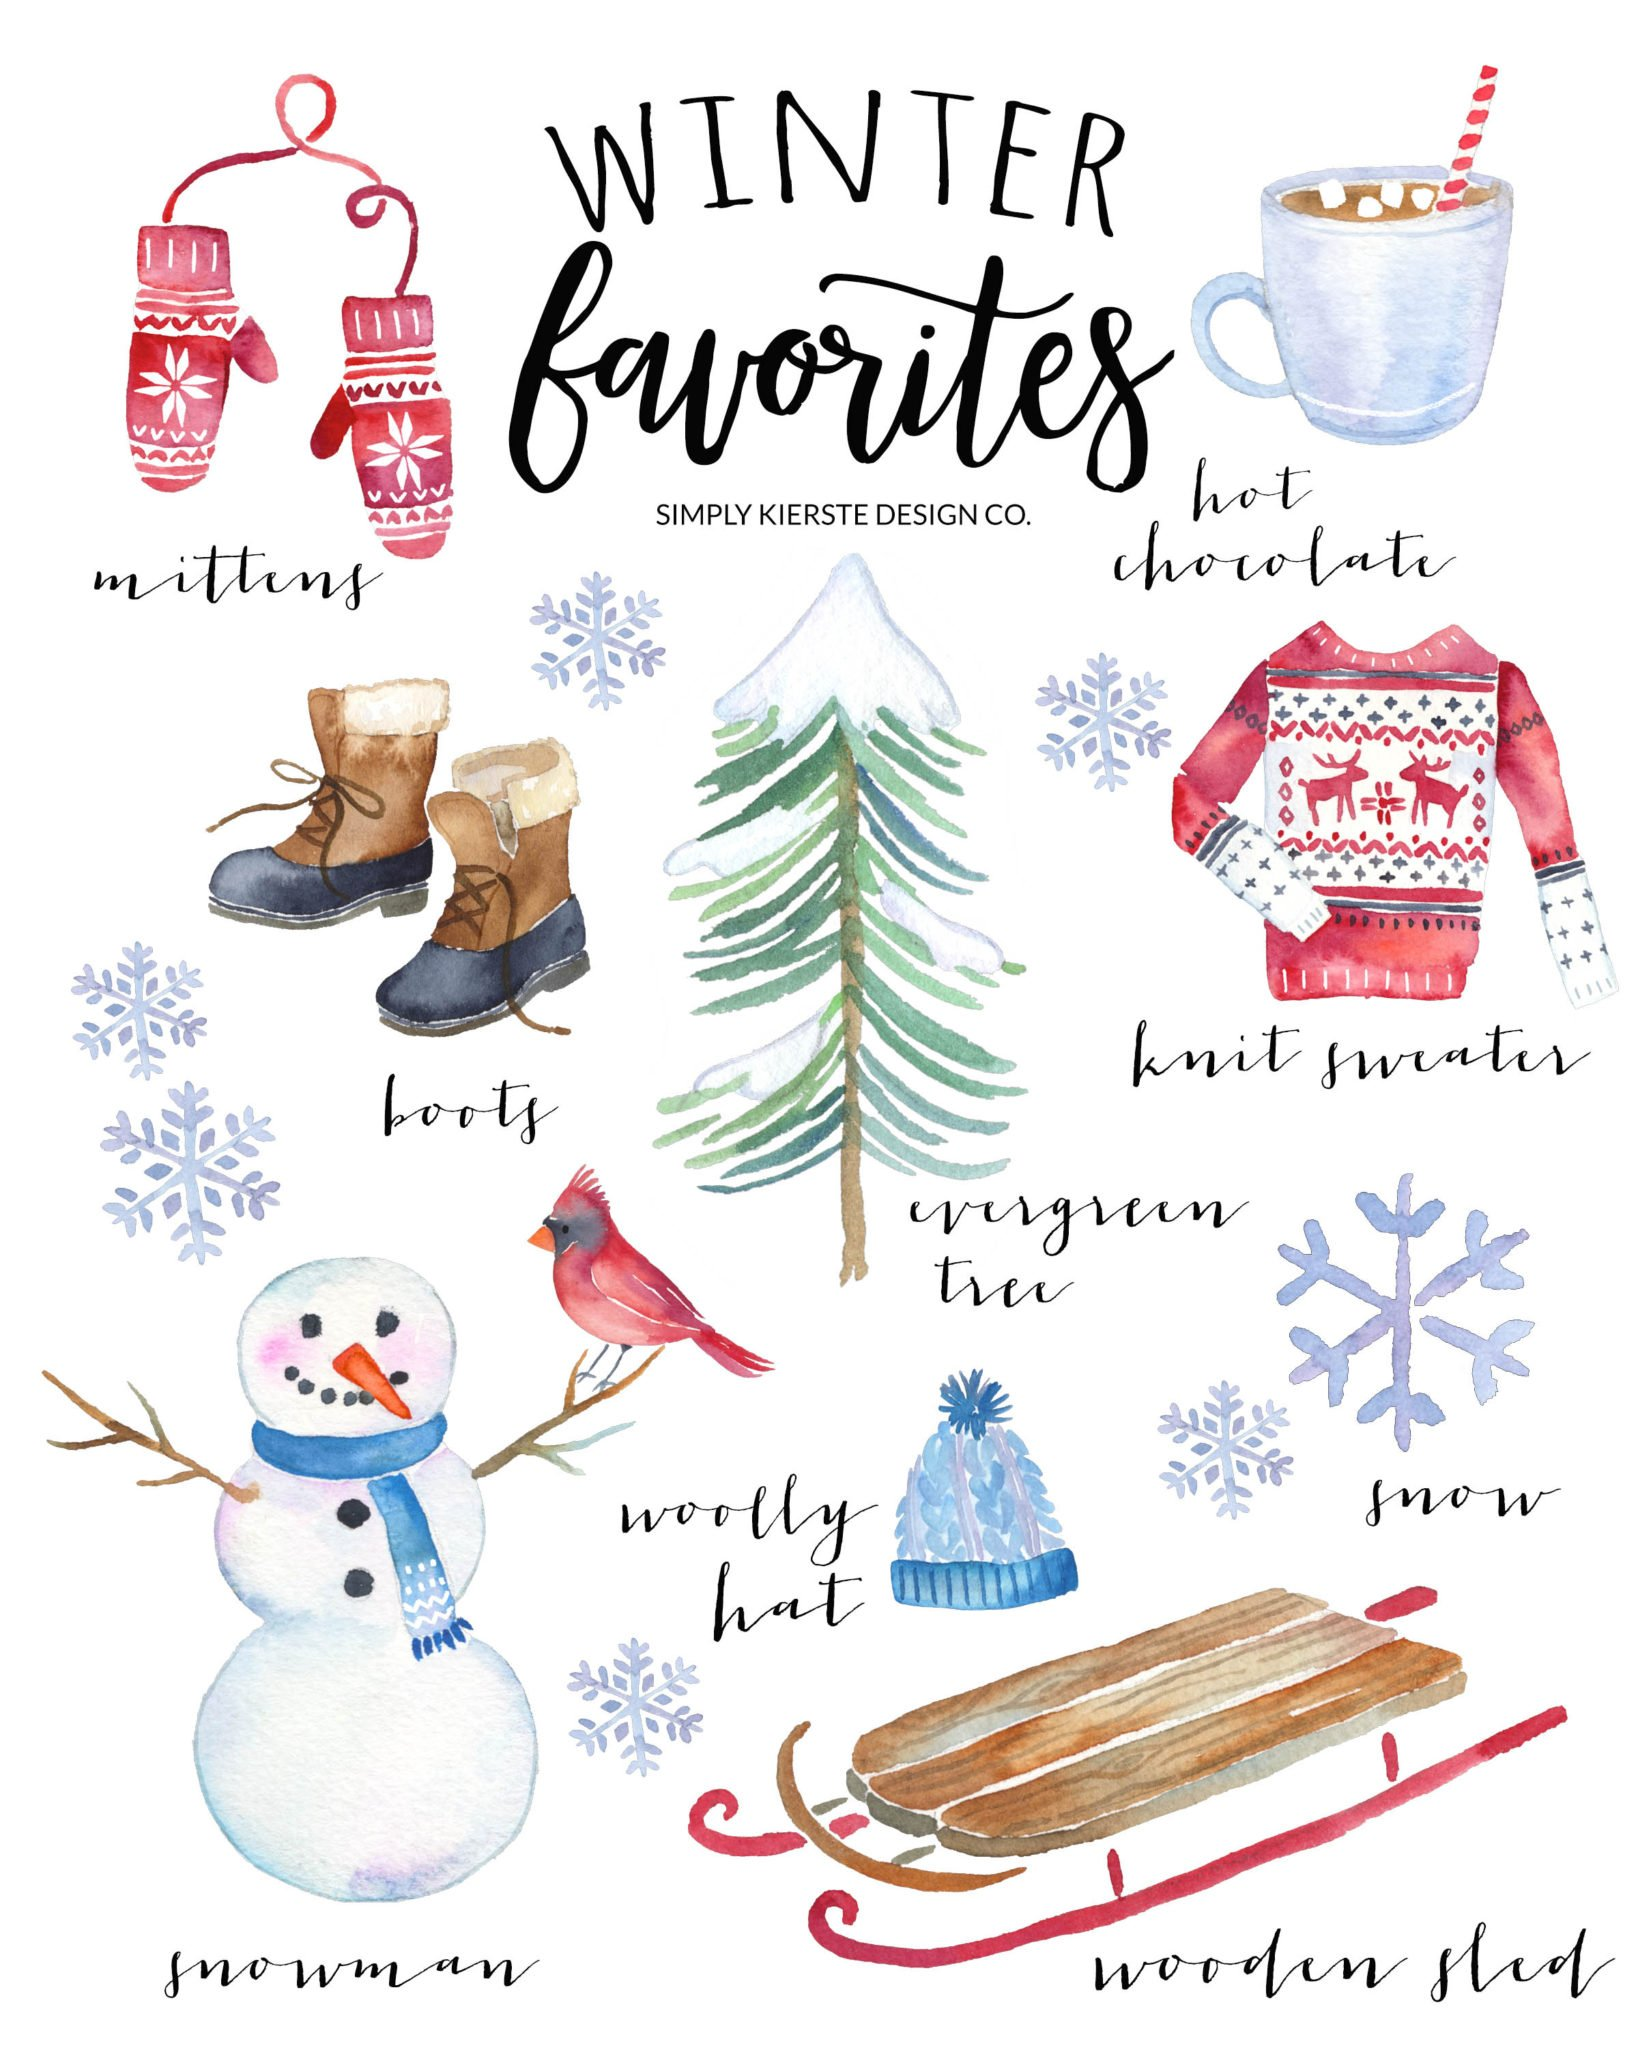 Winter Favorites Printable | Vintage Style | simplykierste.com #vintageChristmas #Christmasprintable #winterfavorites #Christmasdecor